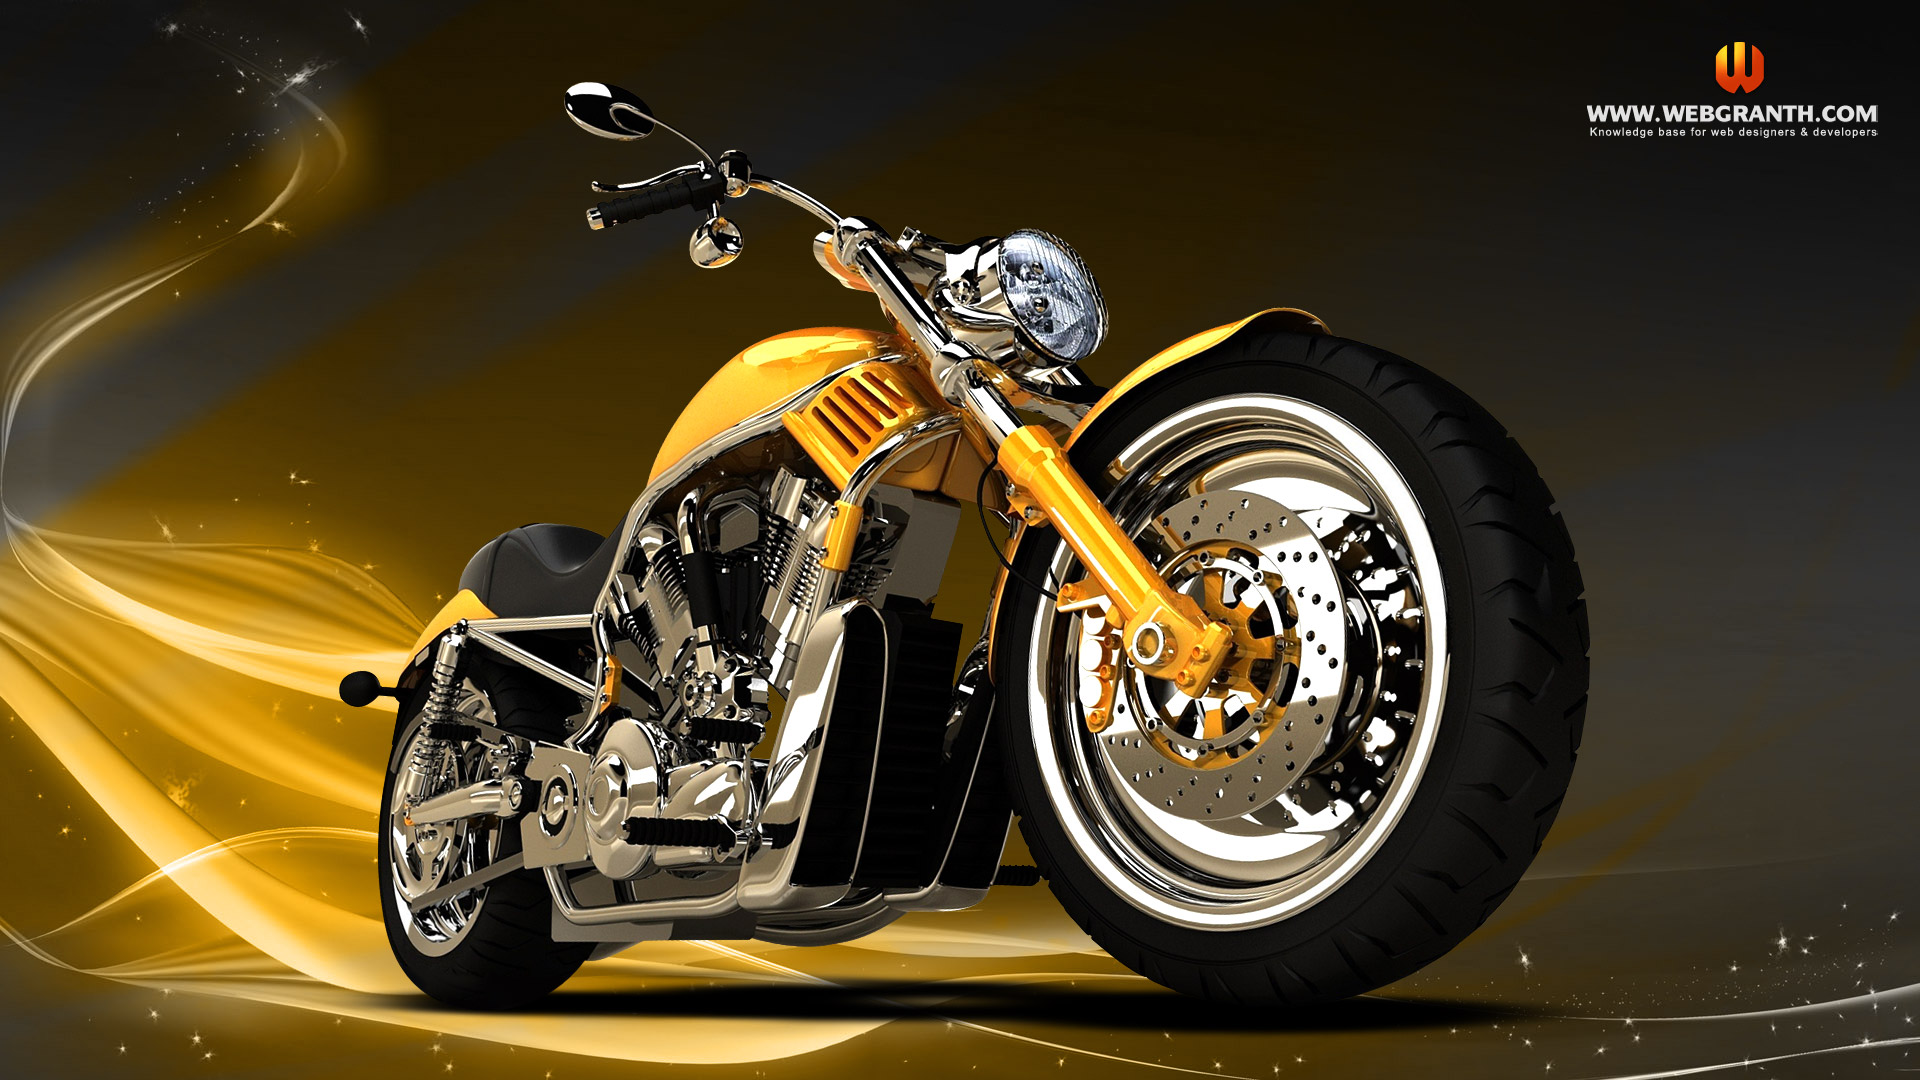 Bikes Wallpapers